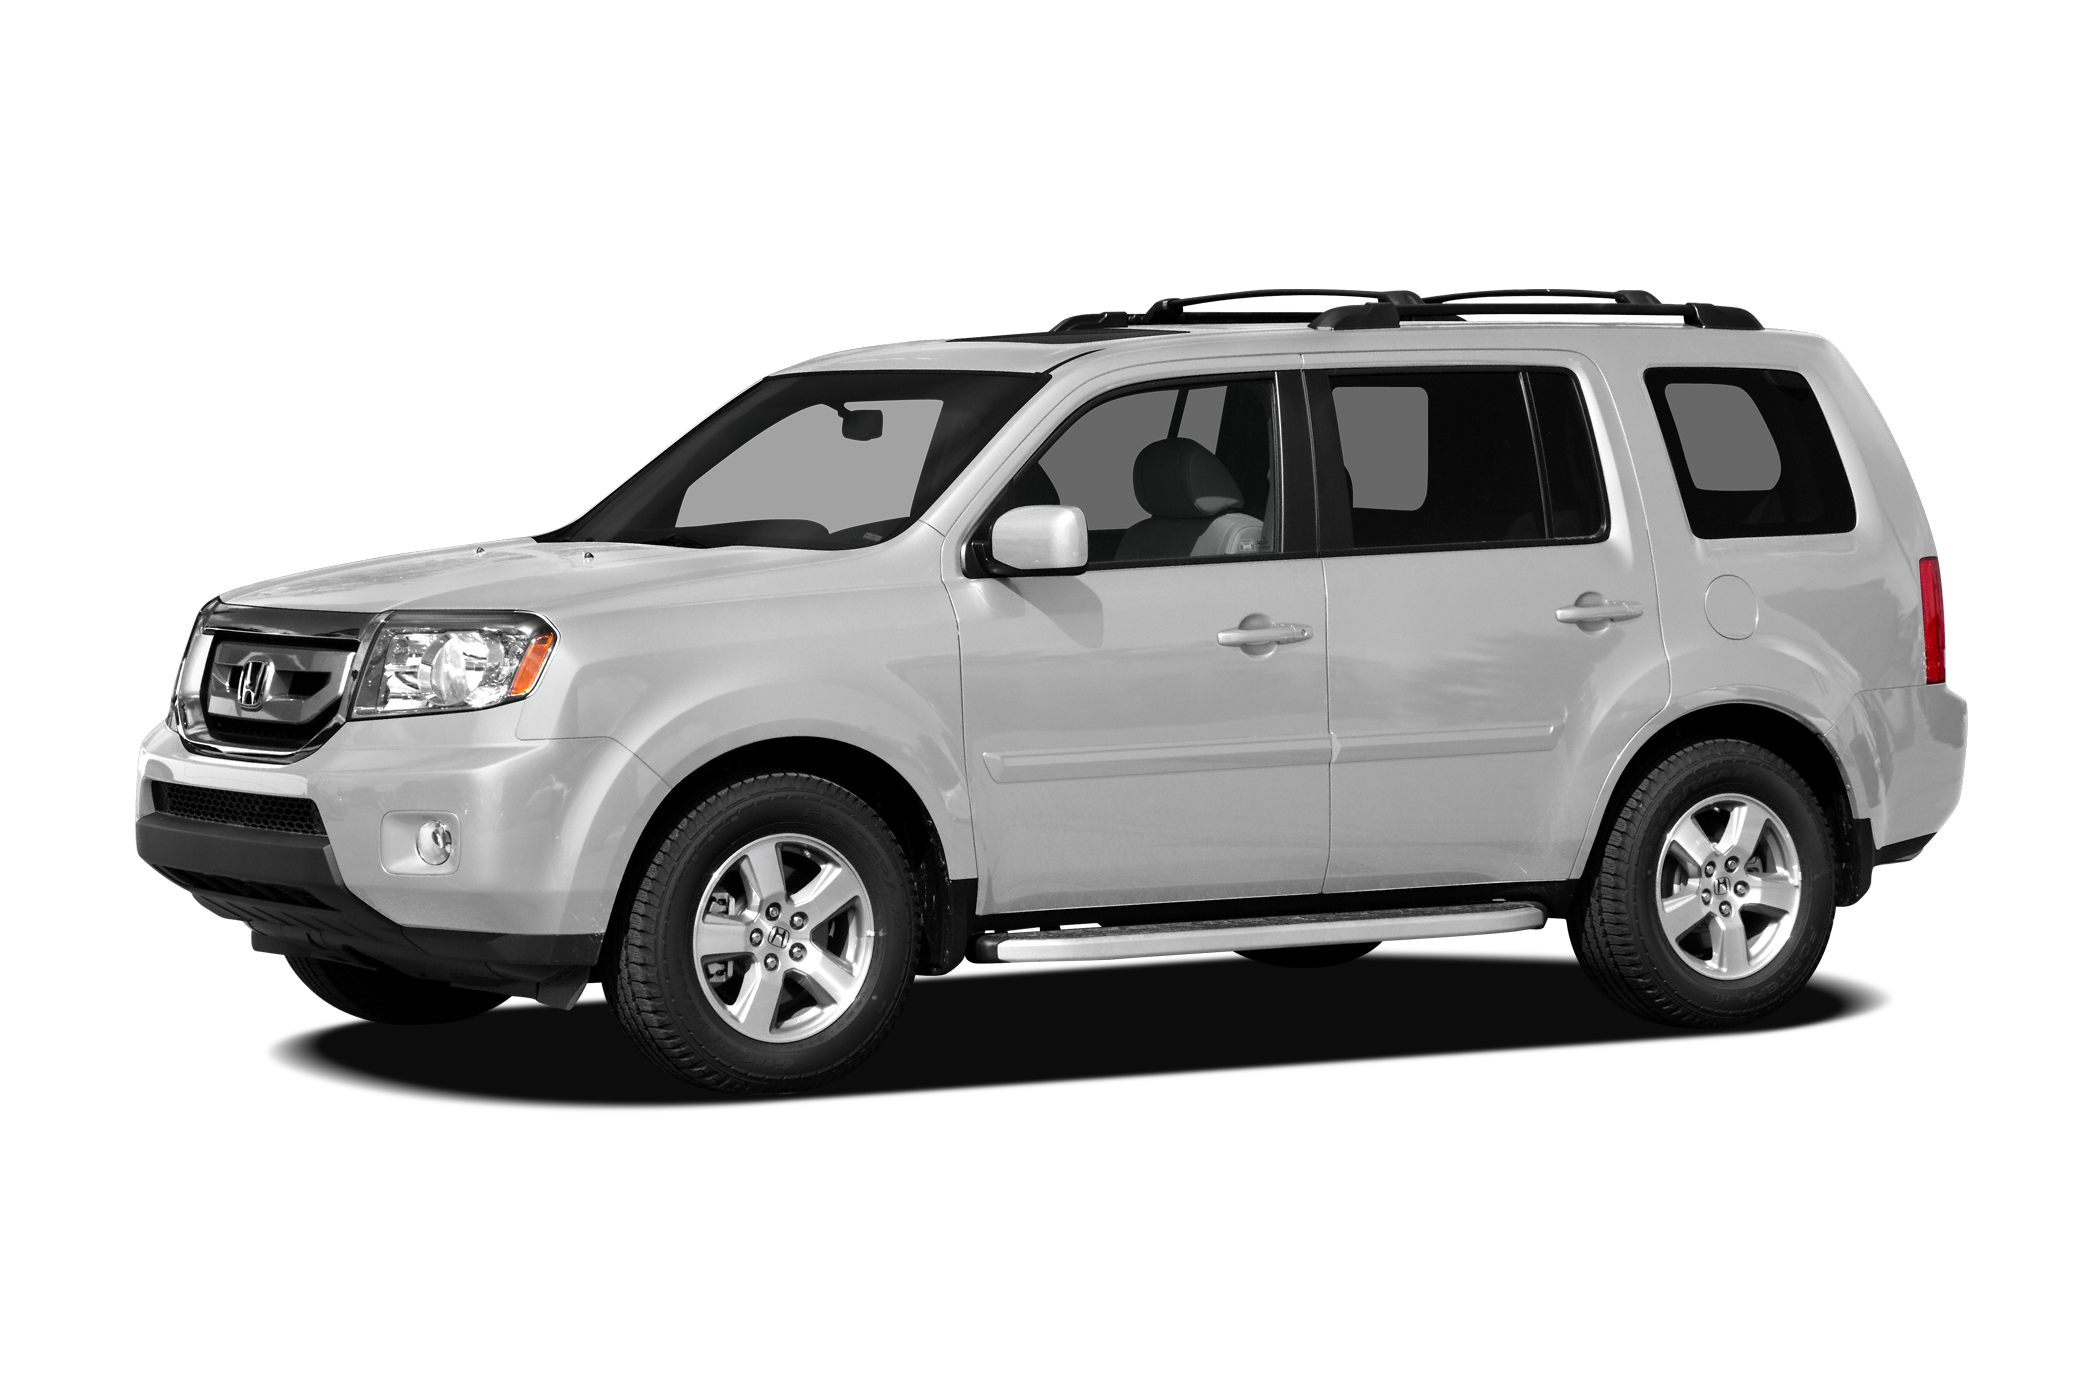 2010 Honda Pilot EX-L SUV for sale in Bronx for $12,495 with 111,061 miles.